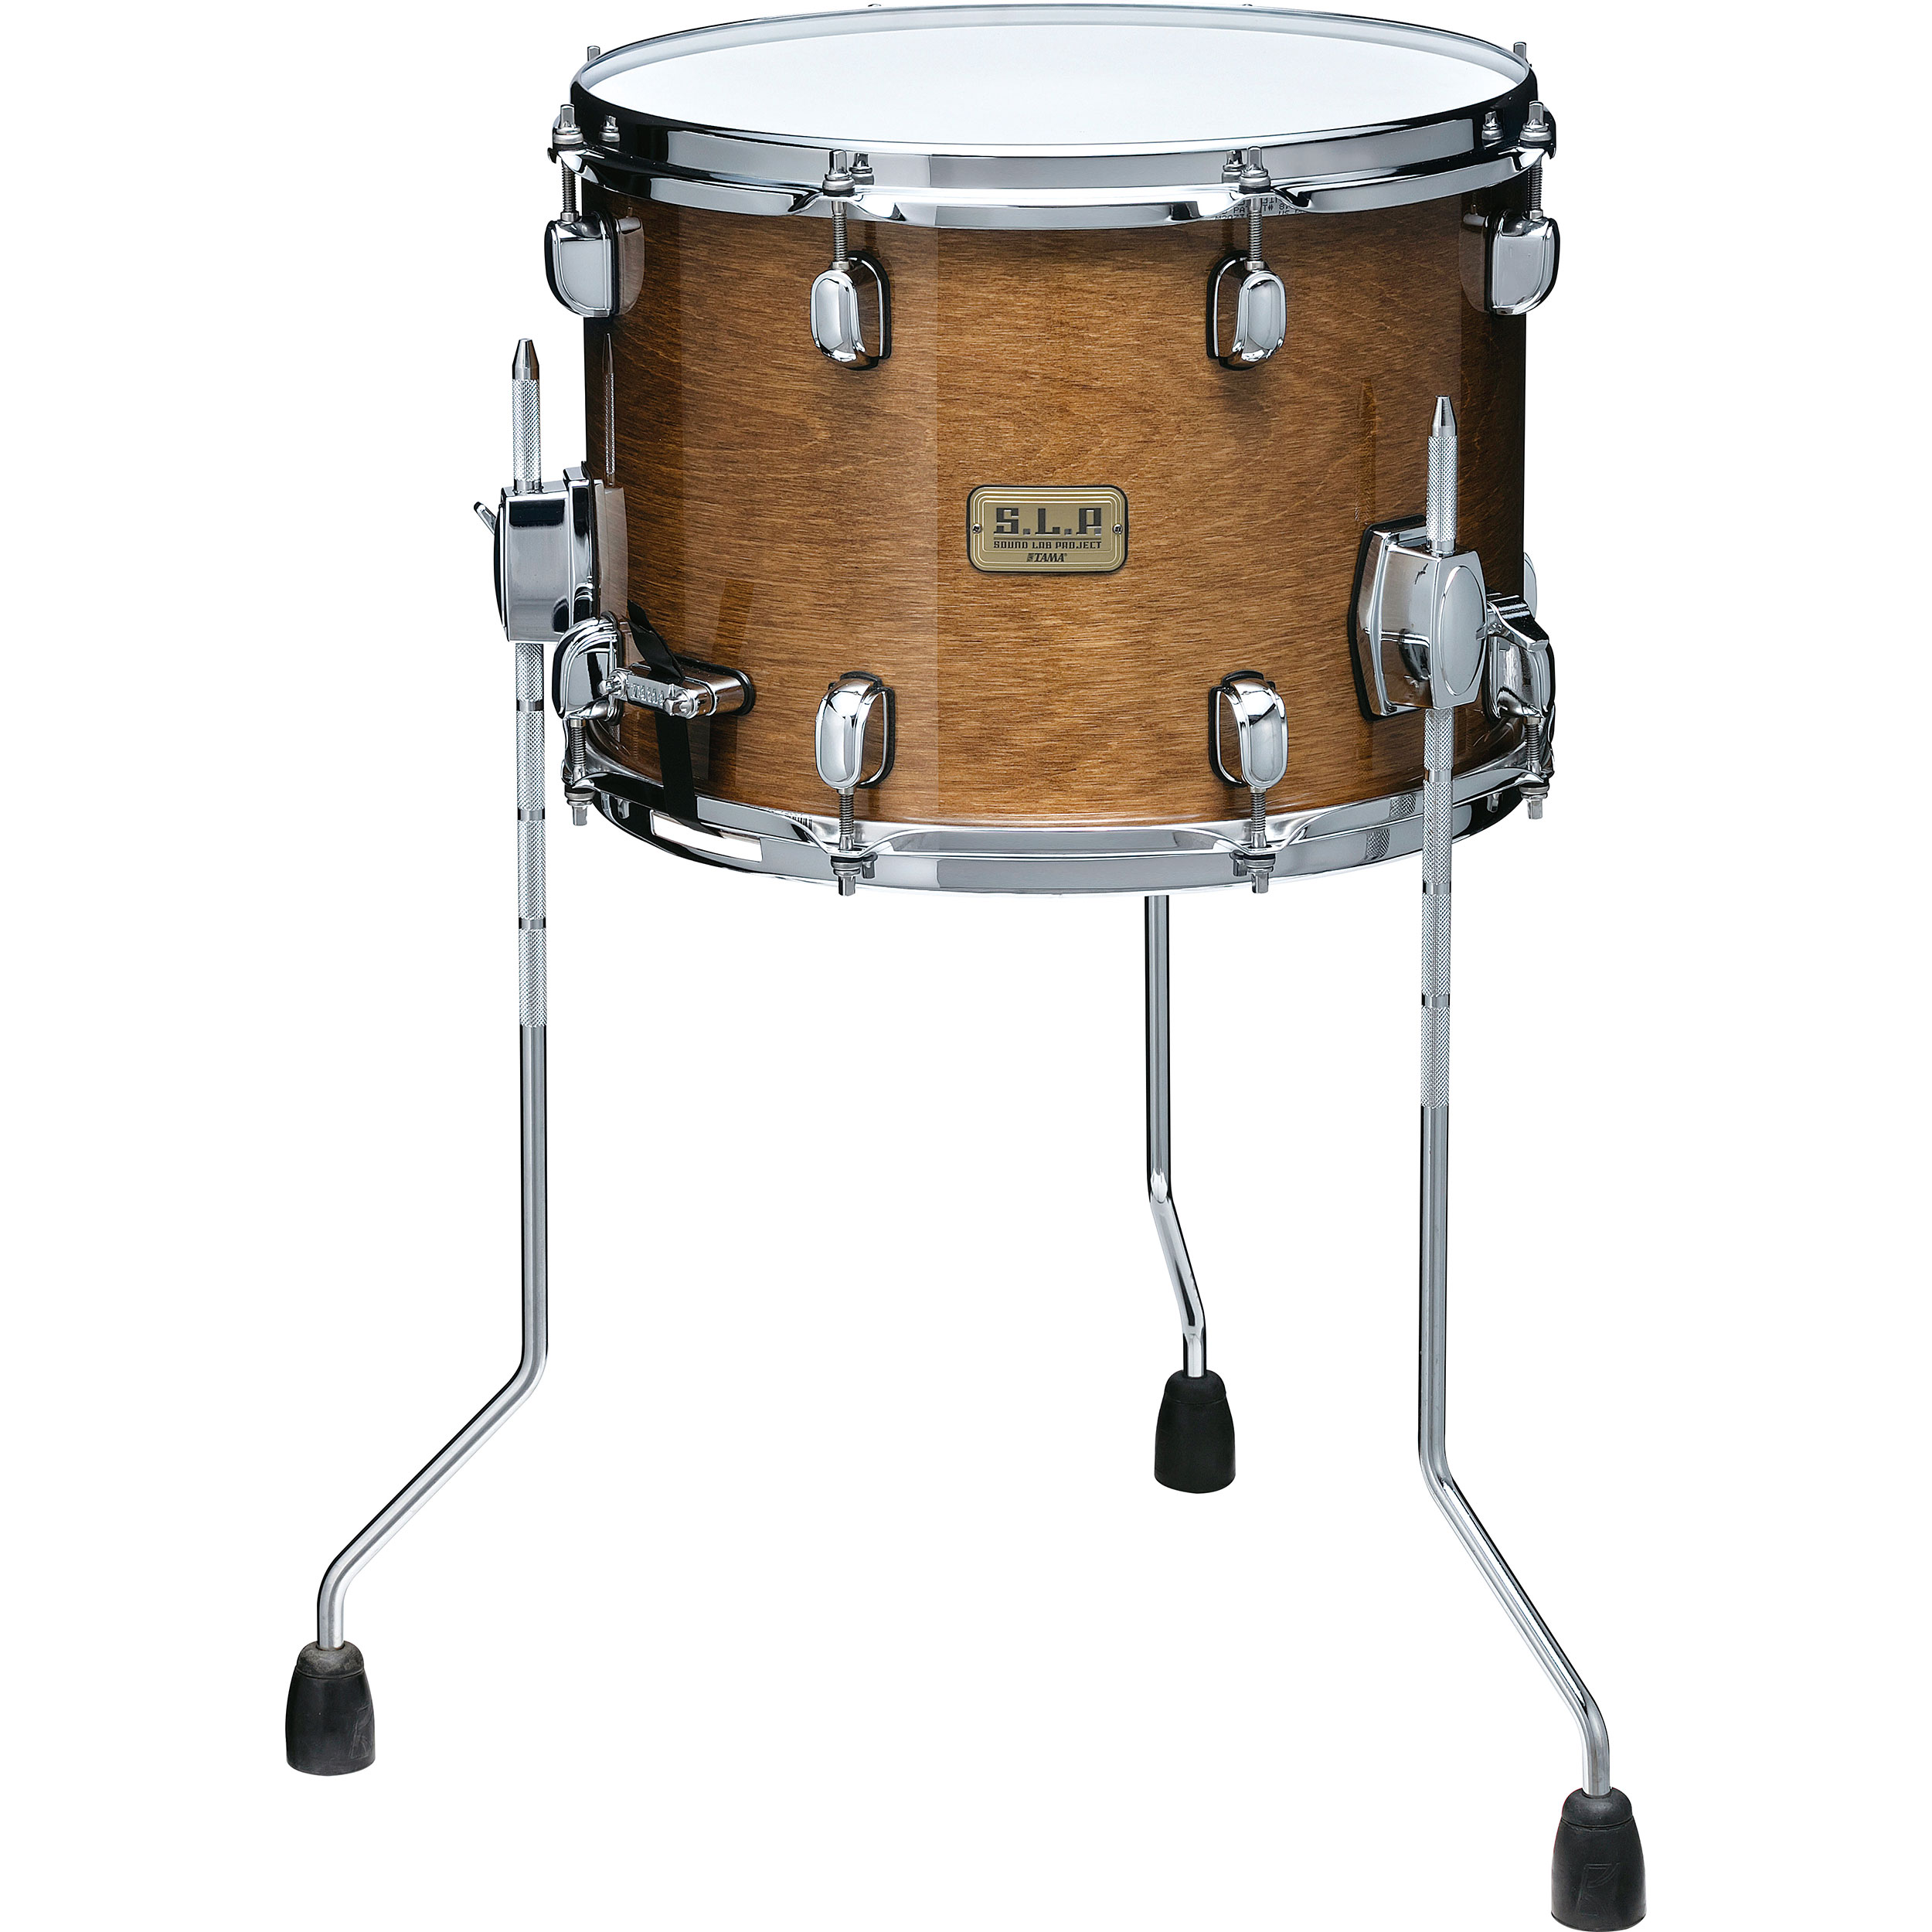 "Tama 10"" x 14"" S.L.P. Duo Birch Snare Drum with Legs"